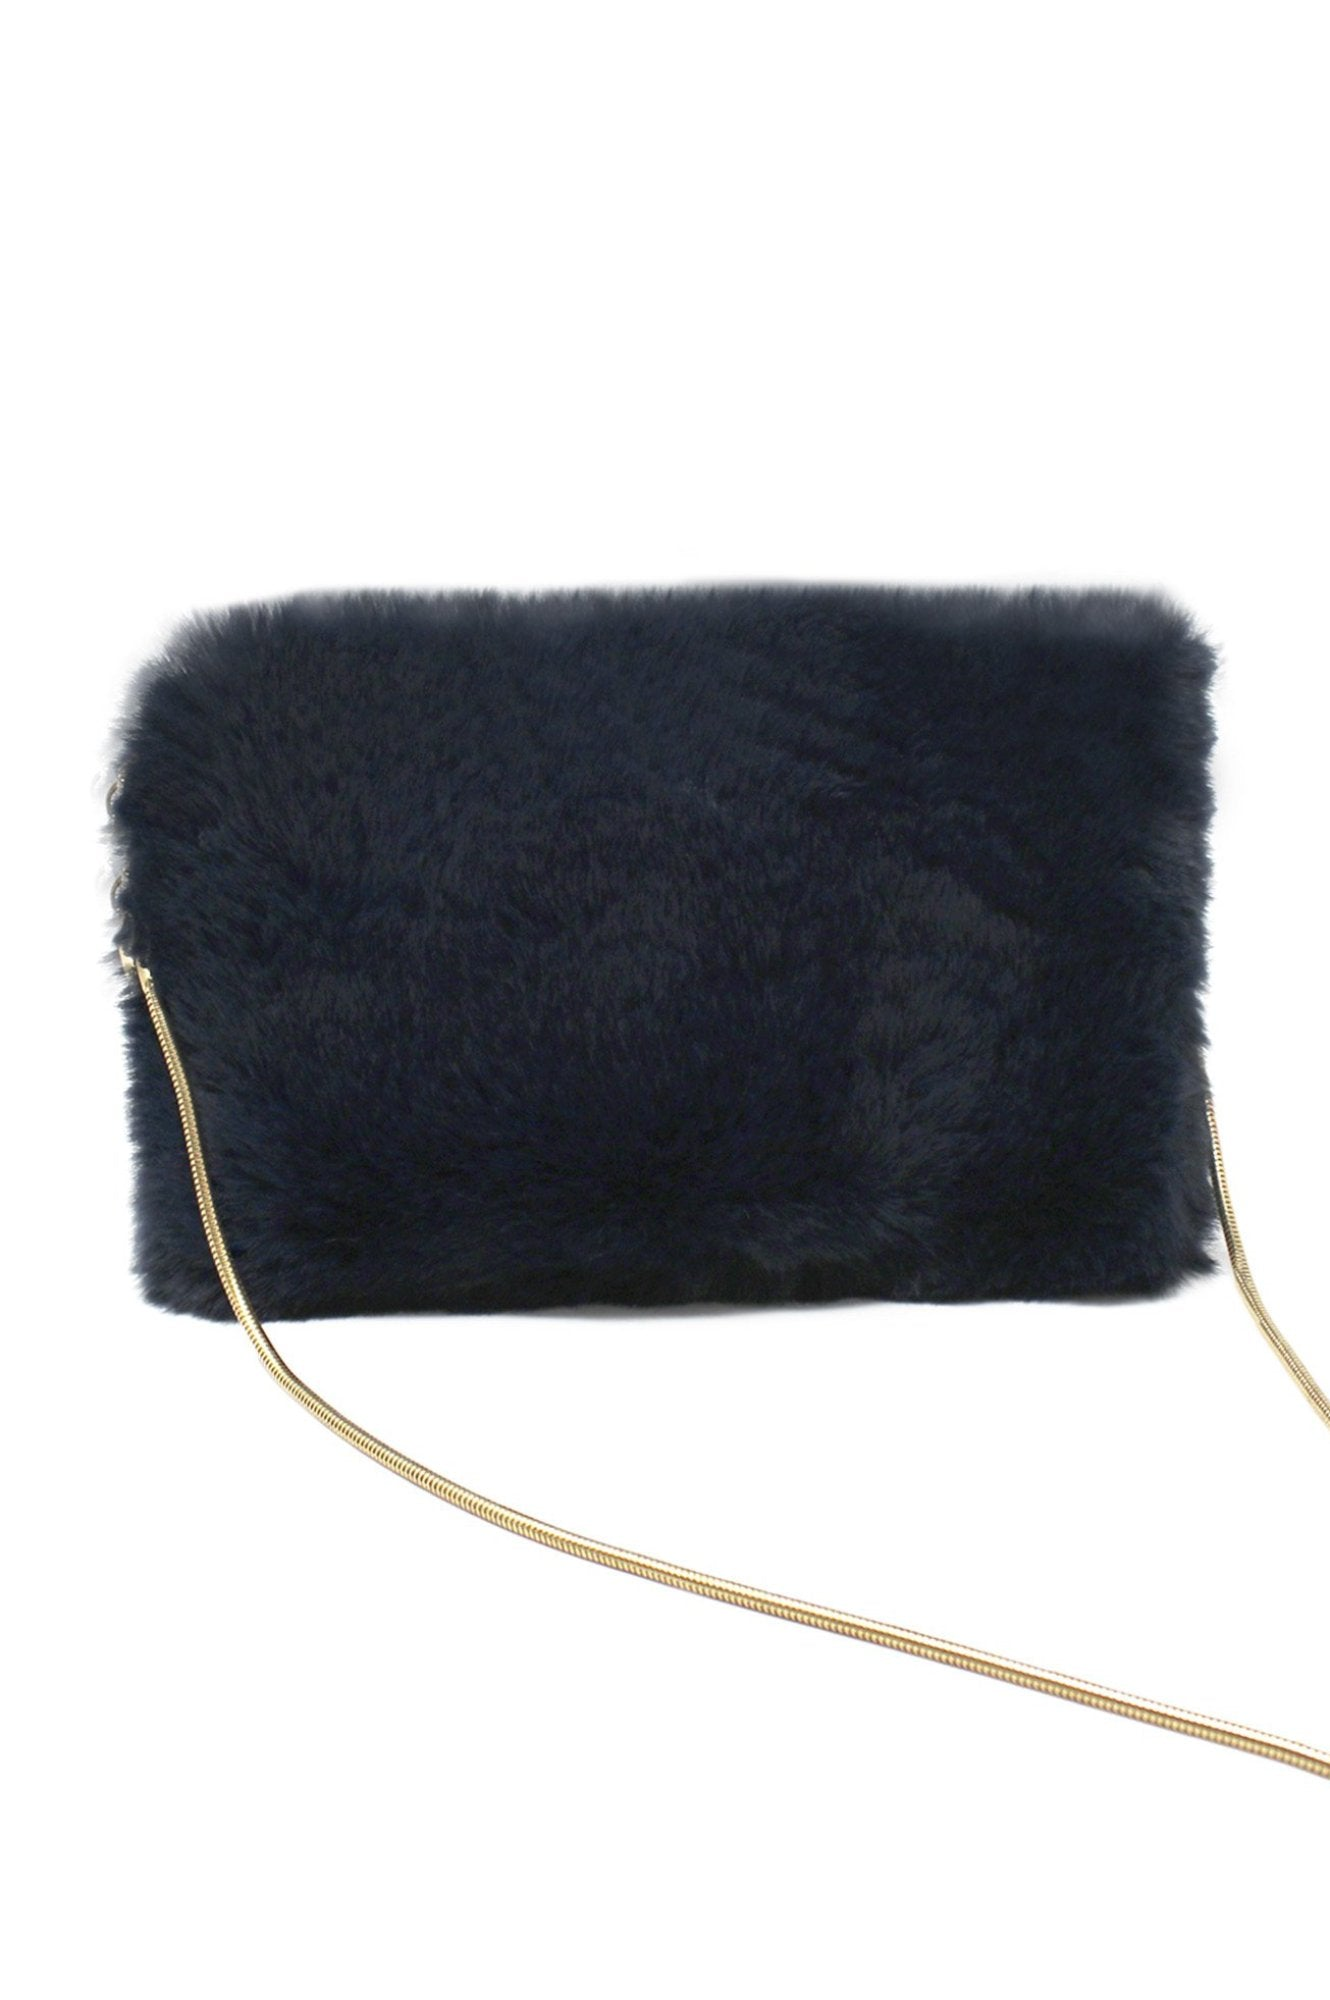 d24fbe57a0a Navy And Gold Clutch Bag